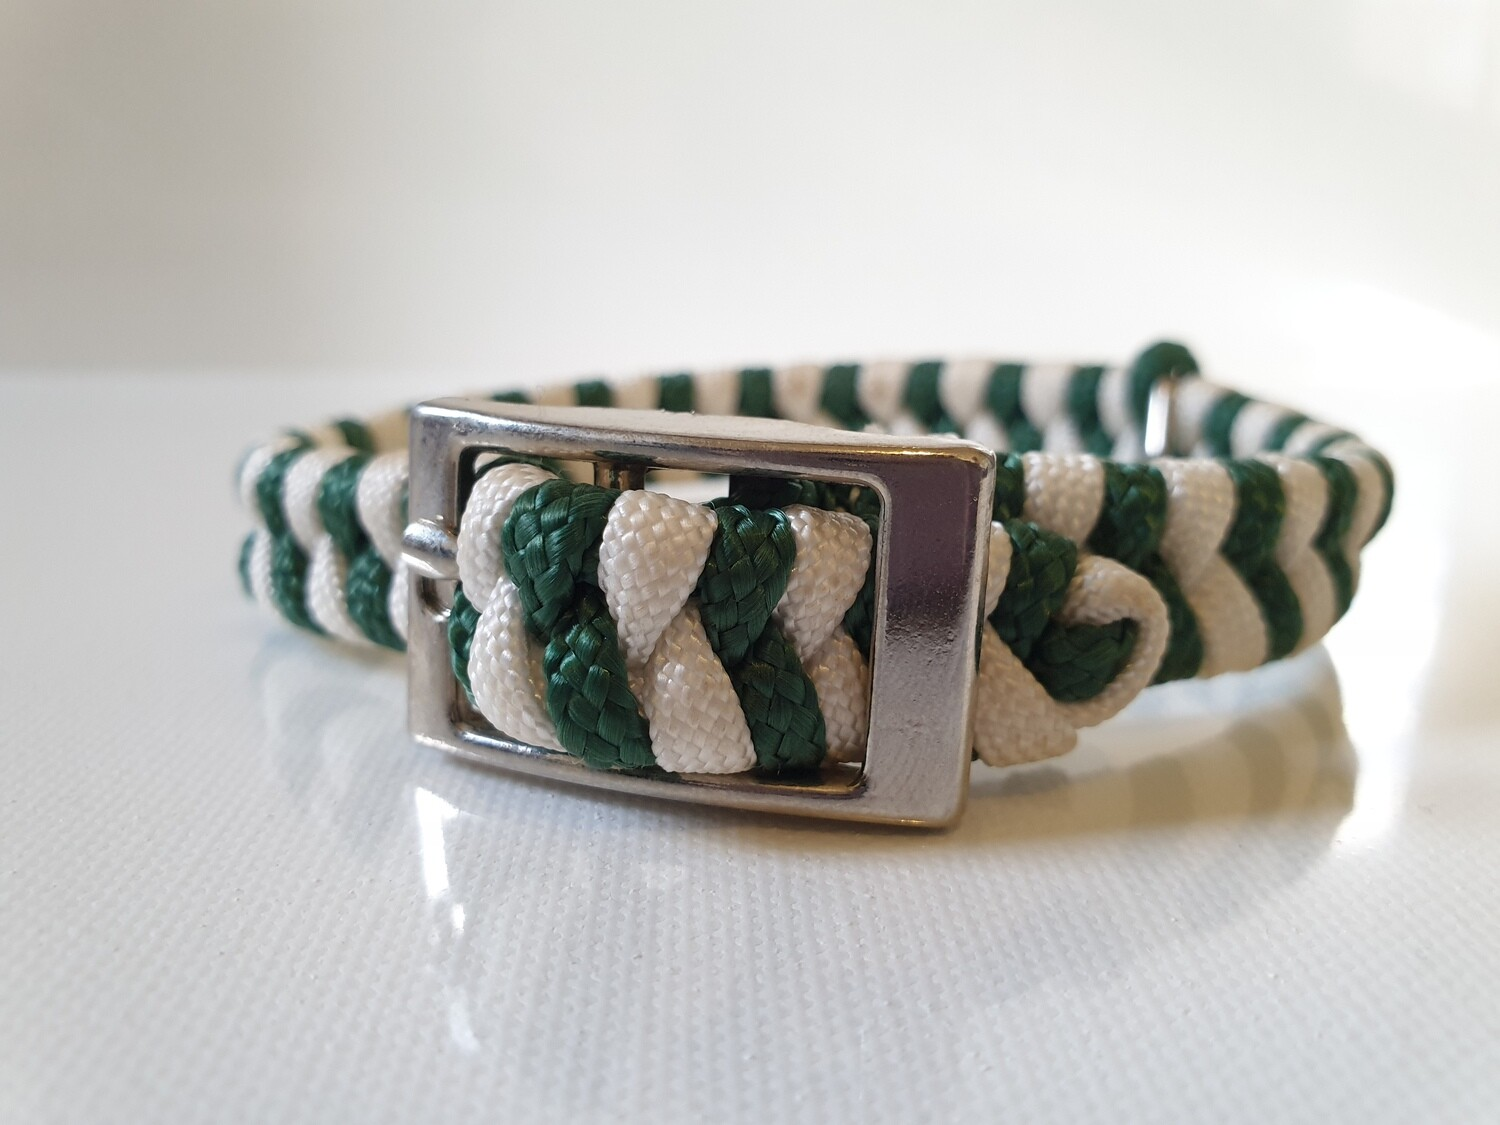 Flat Braid Extra Small Hunter Green/White Dog Collar